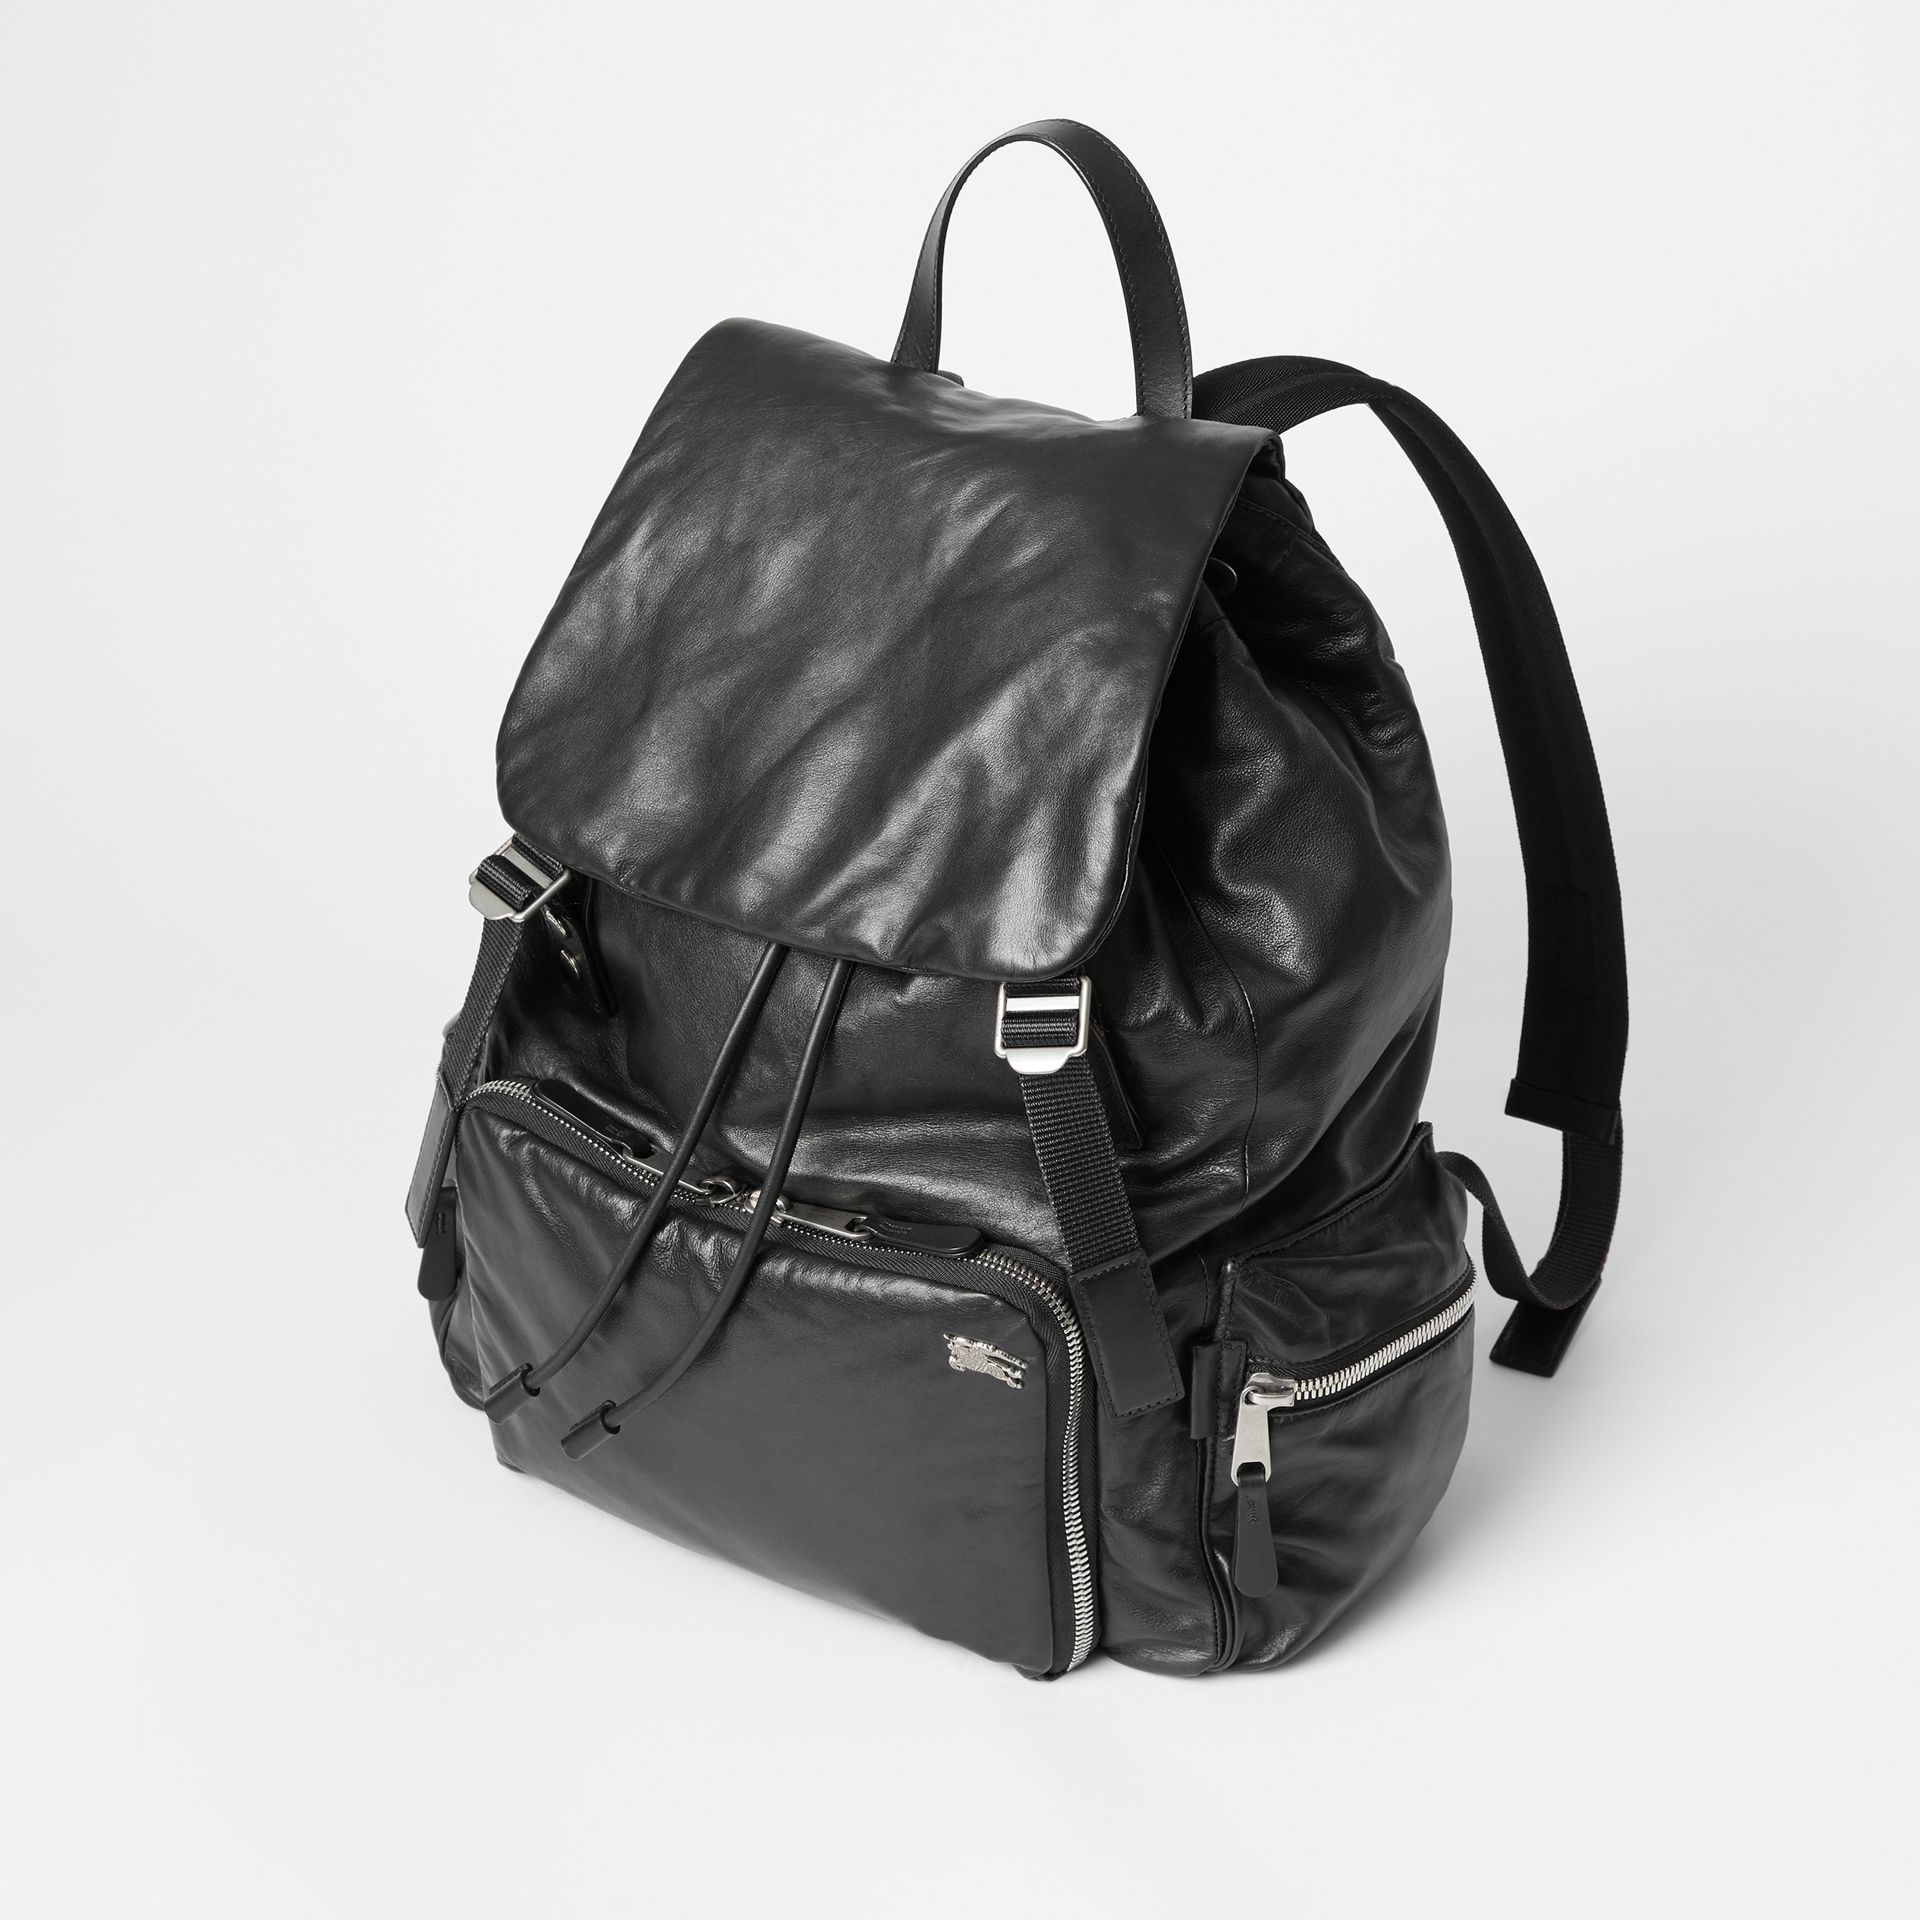 Sac The Rucksack extra-large en cuir nappa (Noir) - Homme | Burberry - photo de la galerie 4